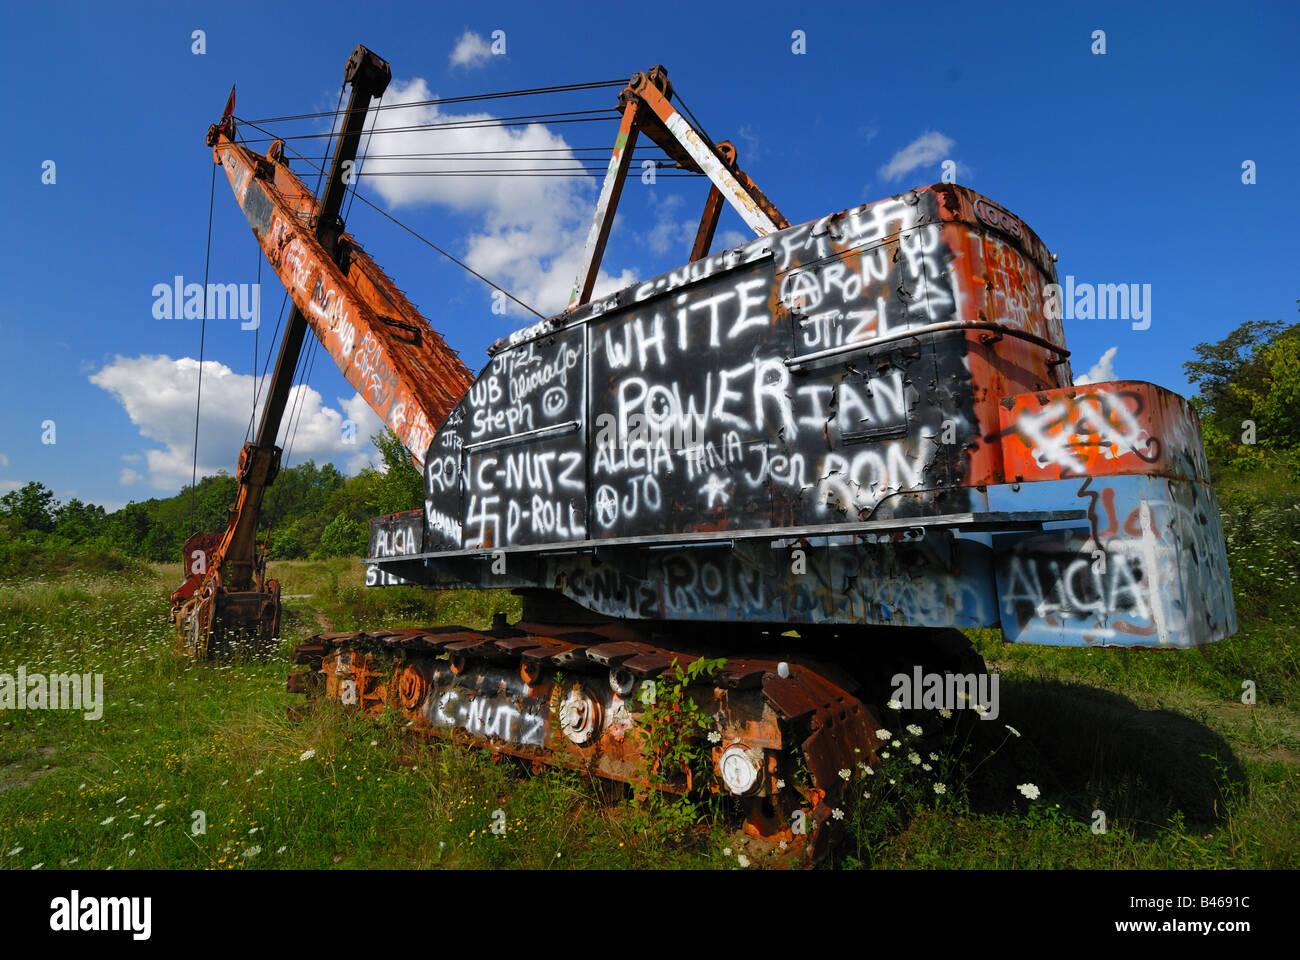 An abandoned steam shovel outside of Uniontown, Pennsylvania is covered in racist graffiti and slurs. - Stock Image